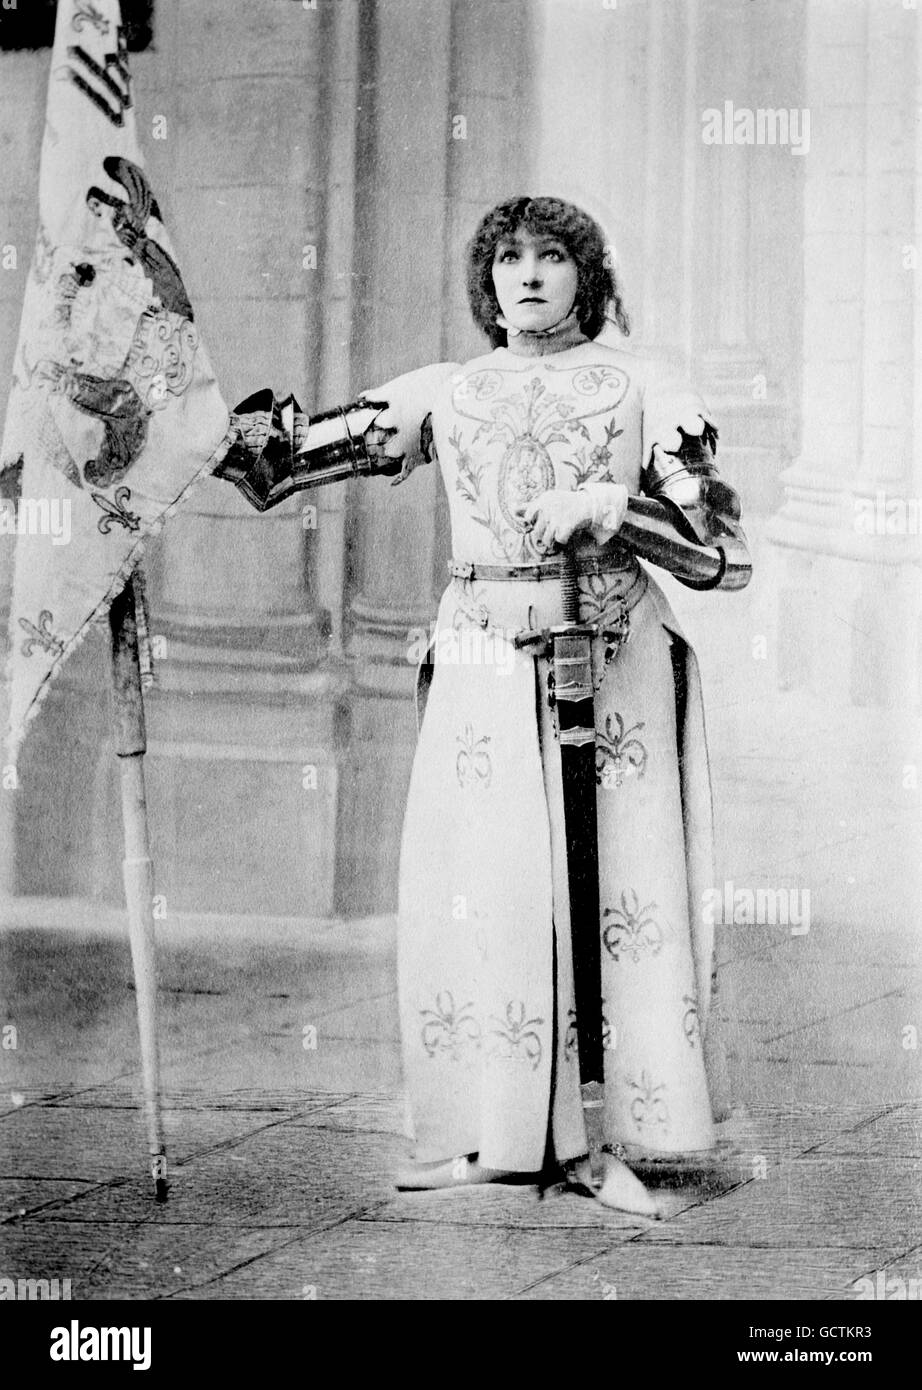 The French actress Sarah Bernhardt (1844-1923) as Joan of Arc (Jeanne d'Arc). Photo from Bain News Service, - Stock Image